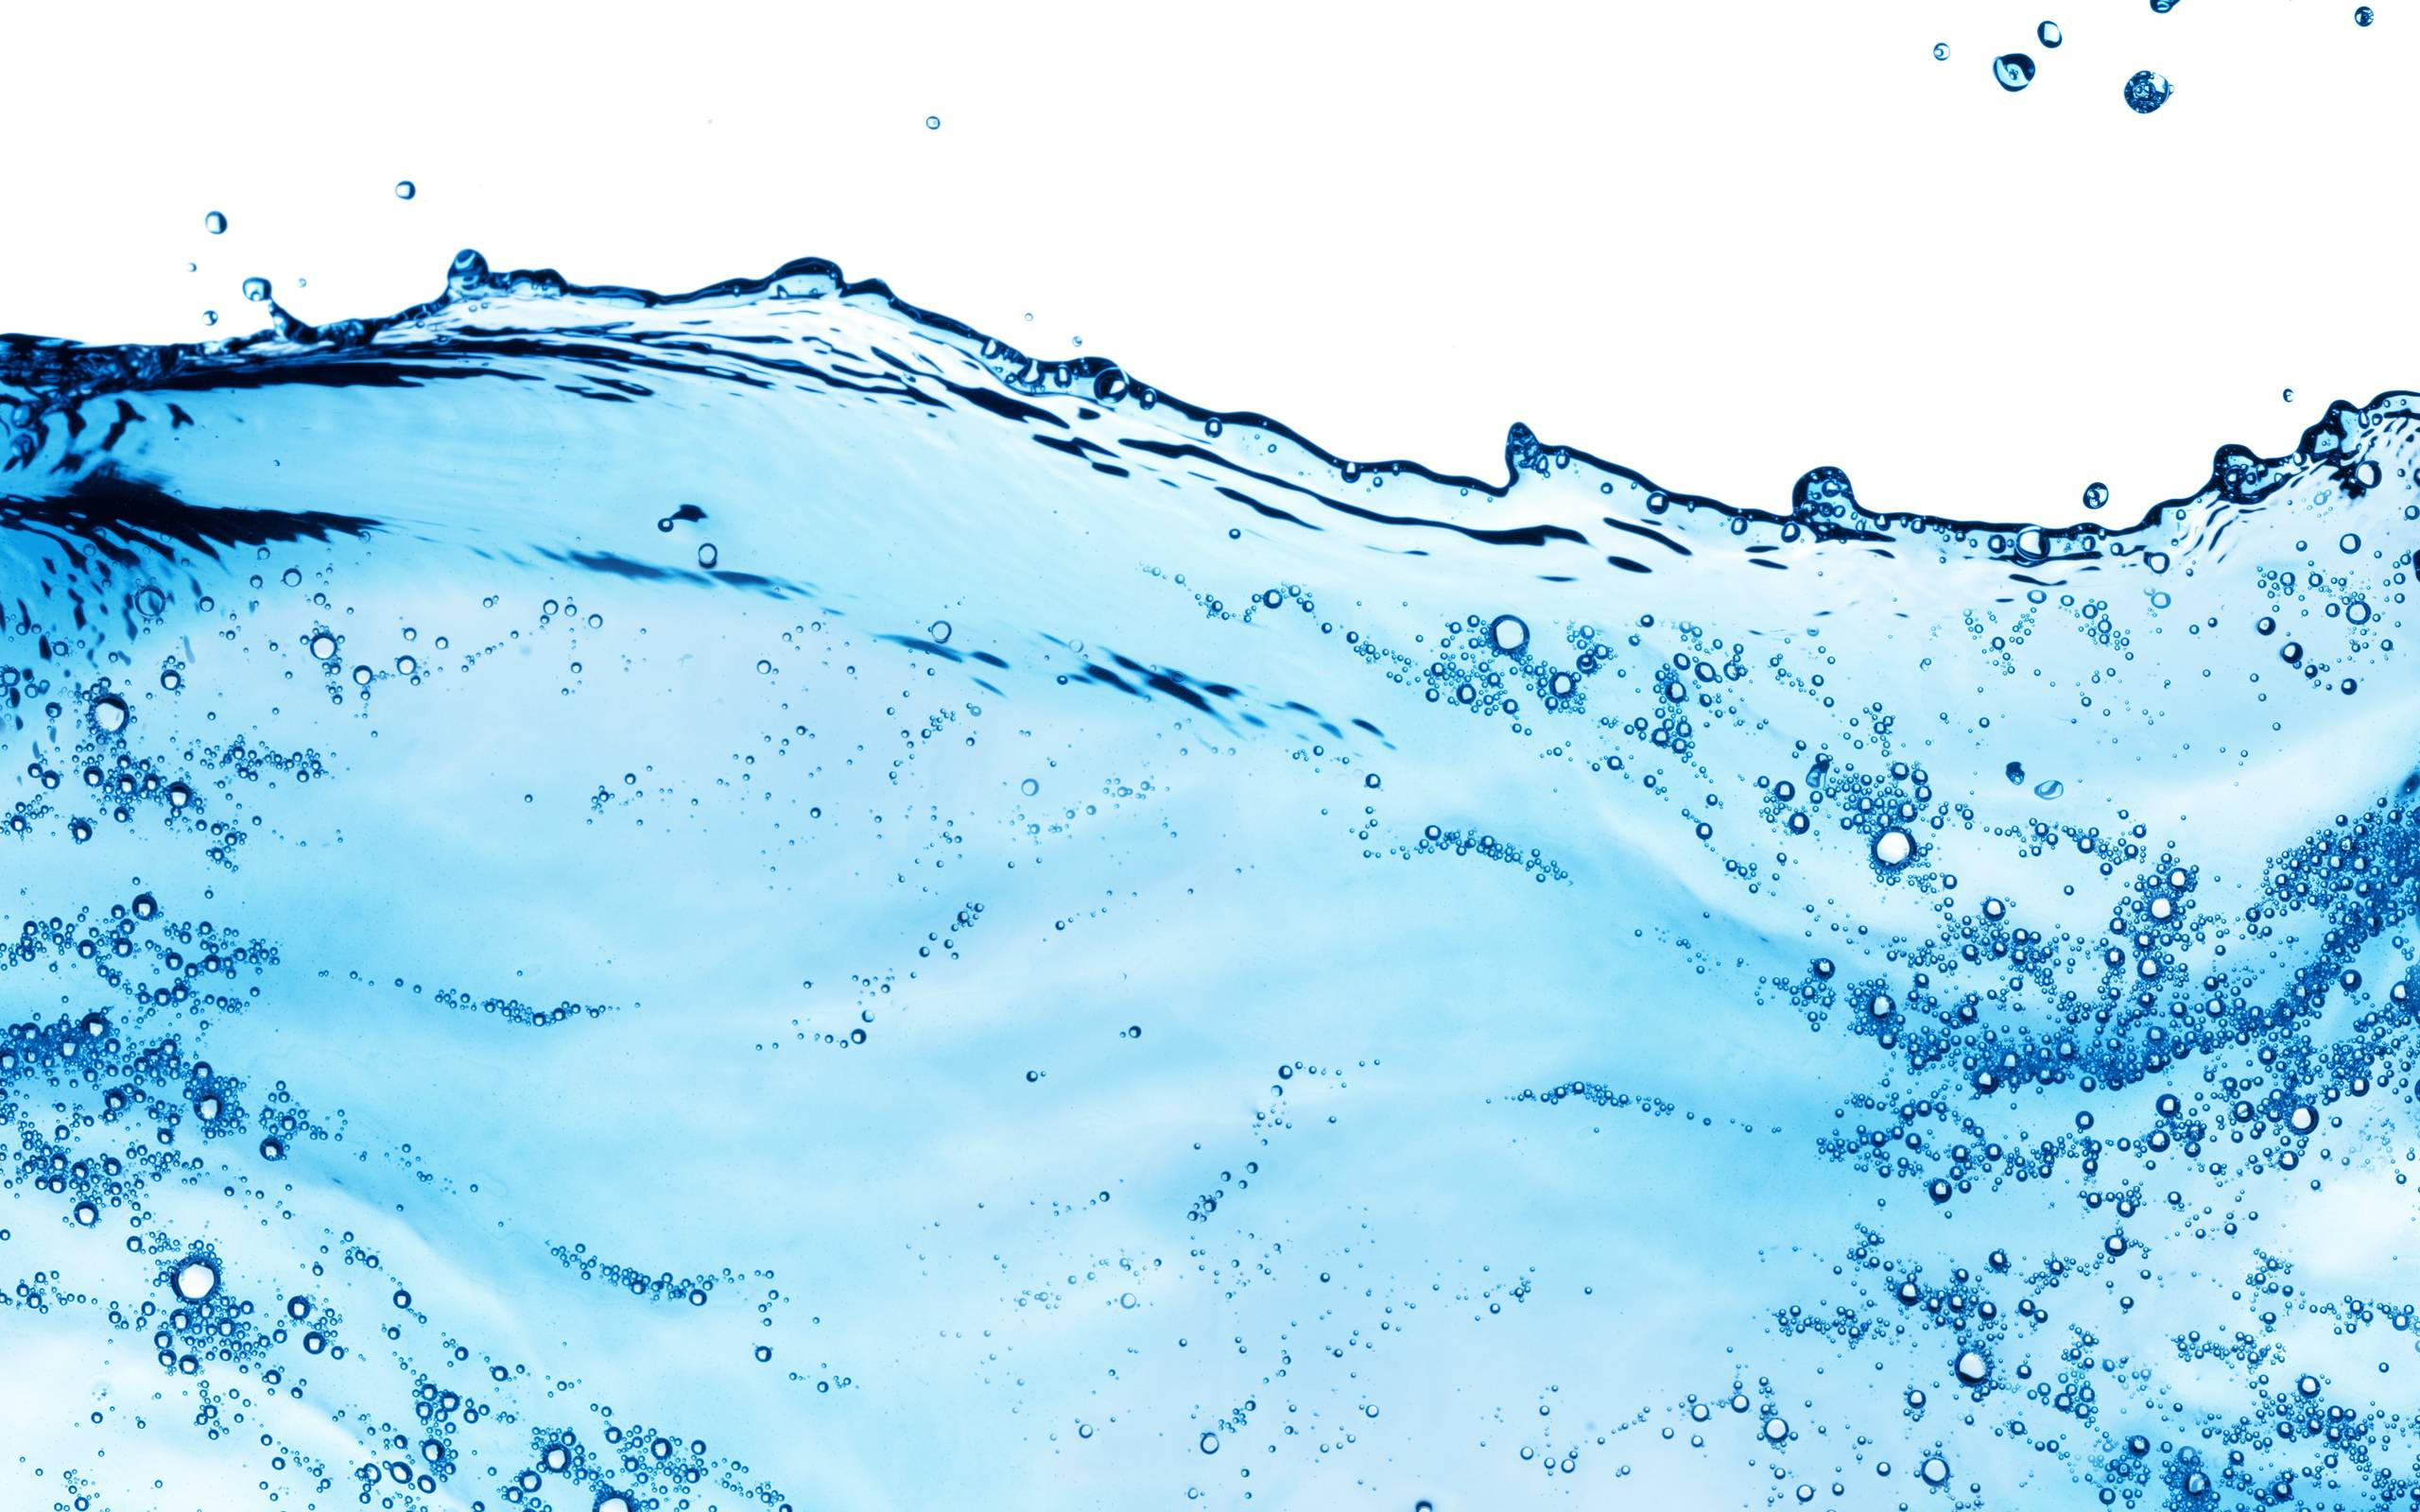 Water Backgrounds Image 2560x1600